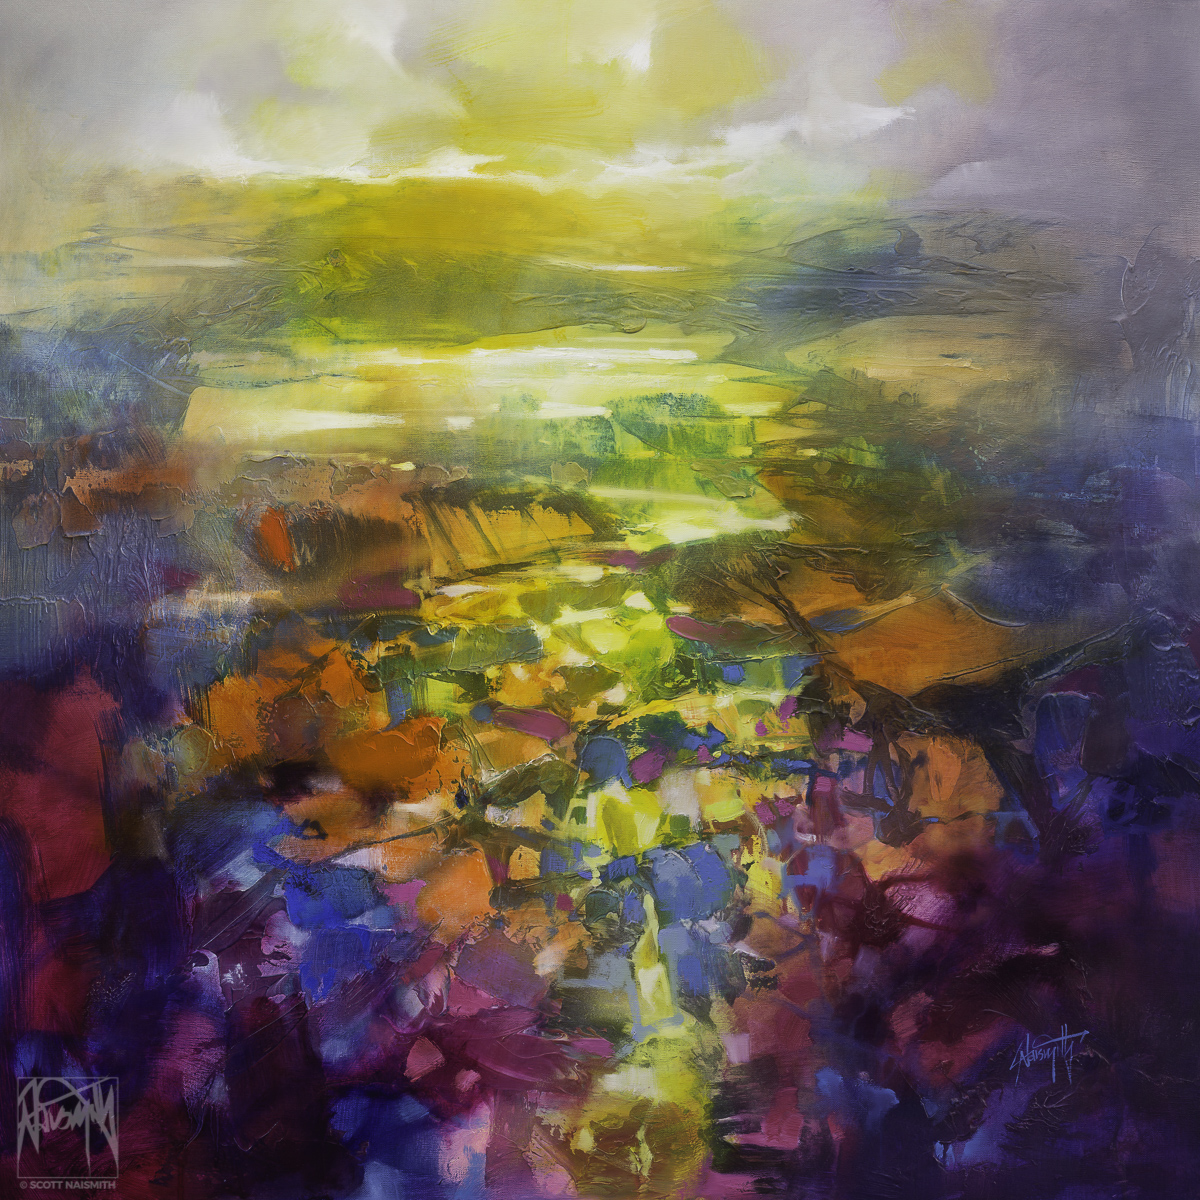 Fluid Resonance IV by Scott Naismith